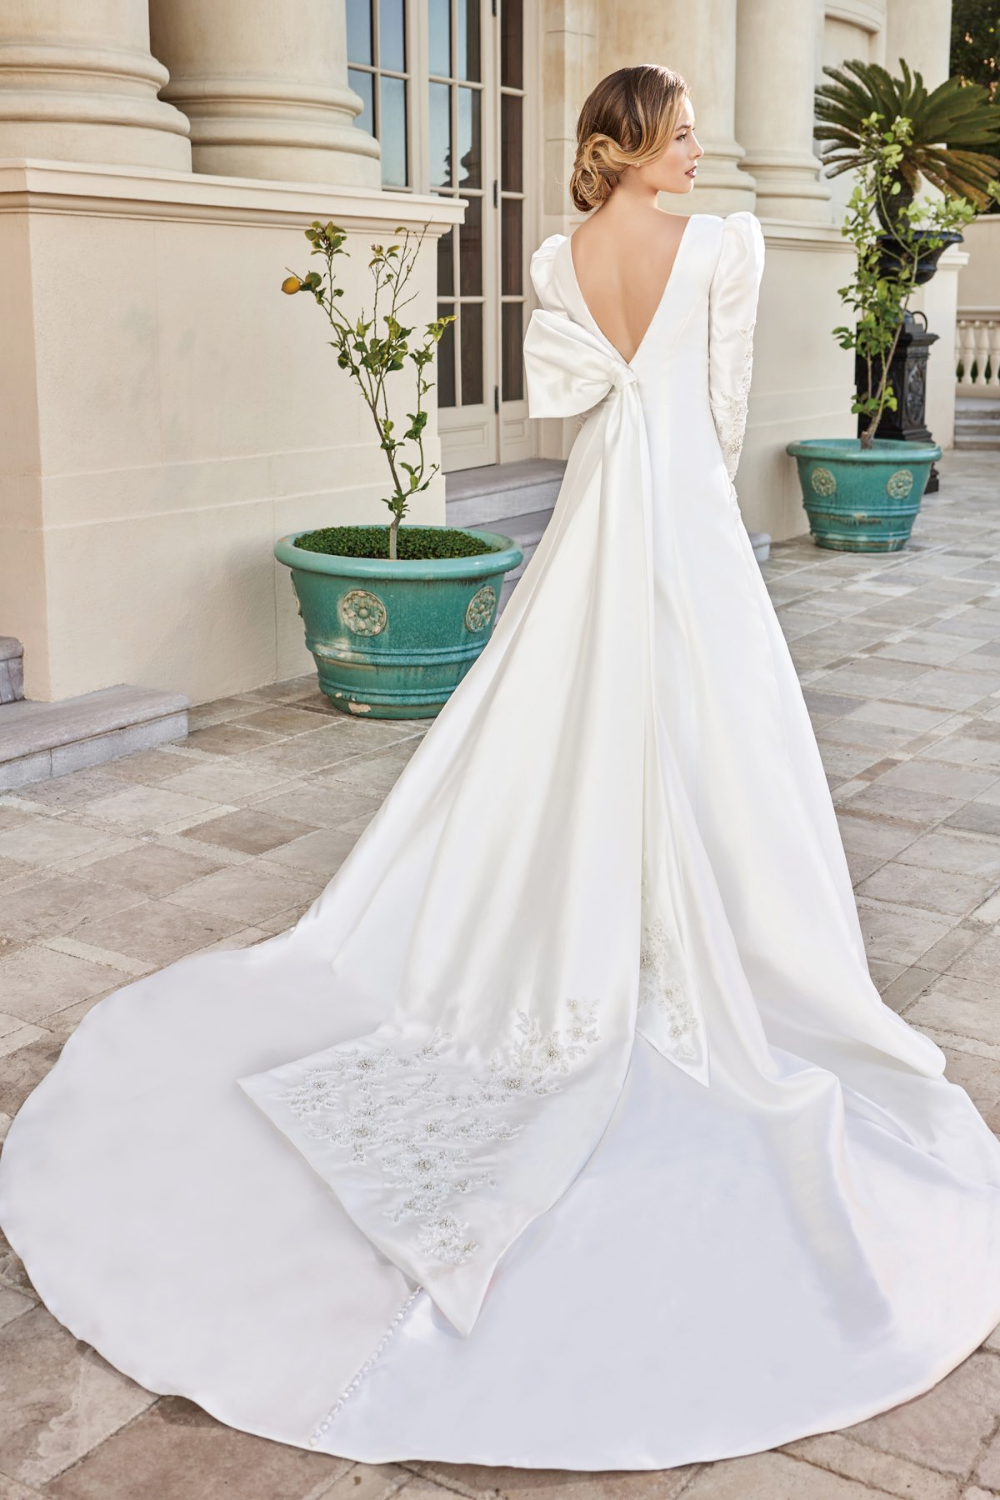 Try This Beautiful Dress From Syb In Manchester Mo T222003 80 S Inspired Mutton Sleeve Mikado Wedding Dress Couture A Line Wedding Dress Boho Bridal Gowns [ 1500 x 1000 Pixel ]